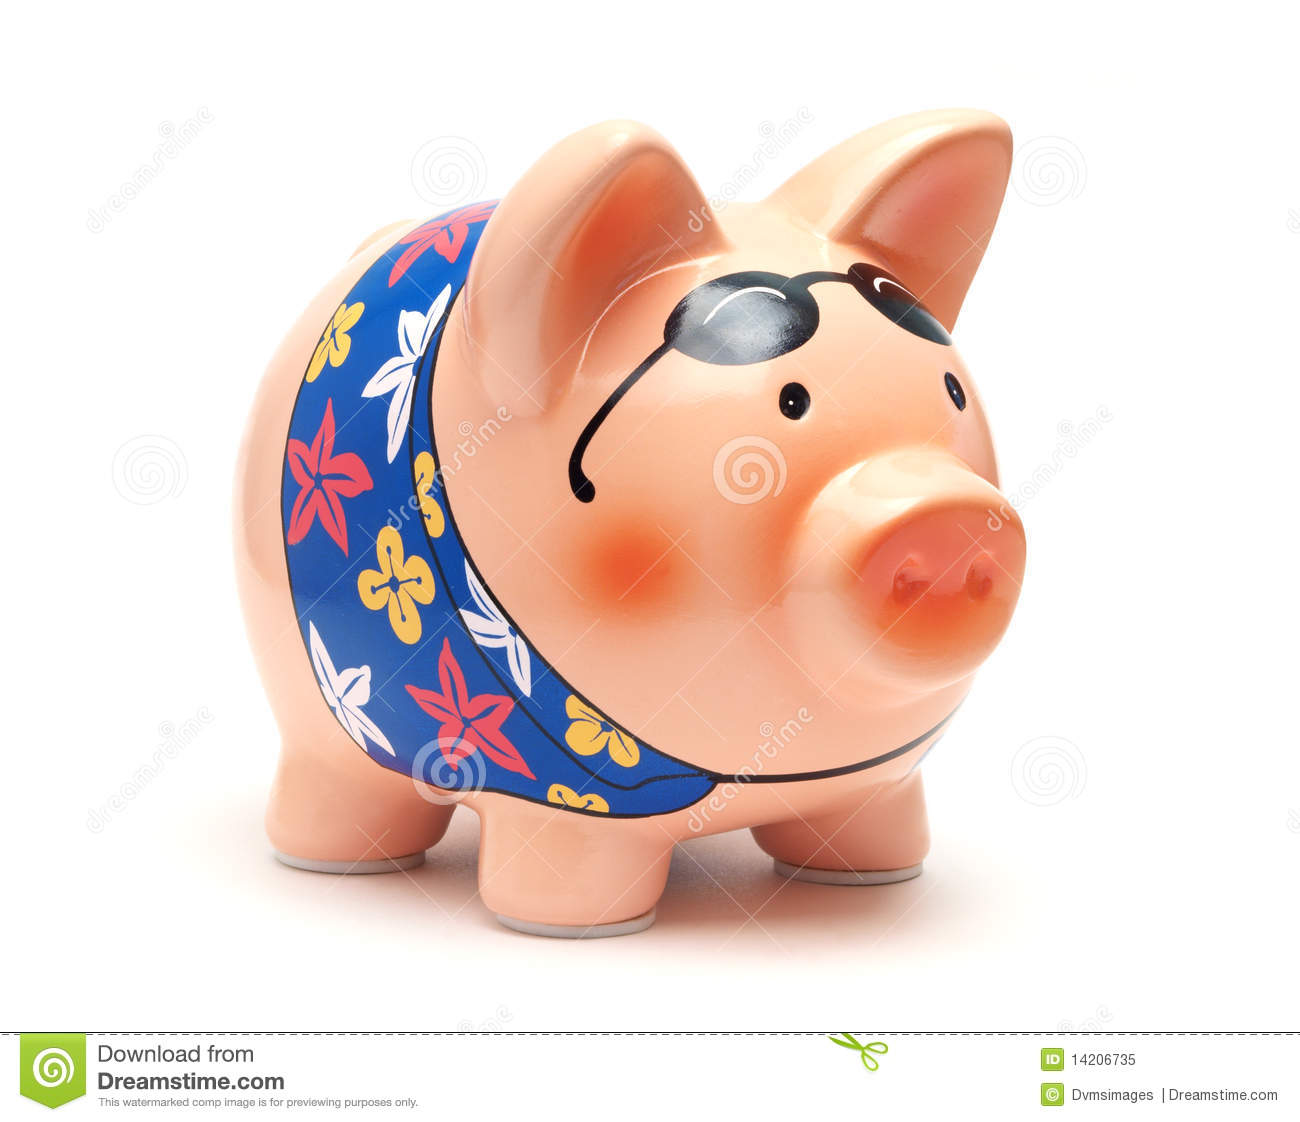 Vacation piggy bank royalty free stock photo image 14206735 for Travel fund piggy bank